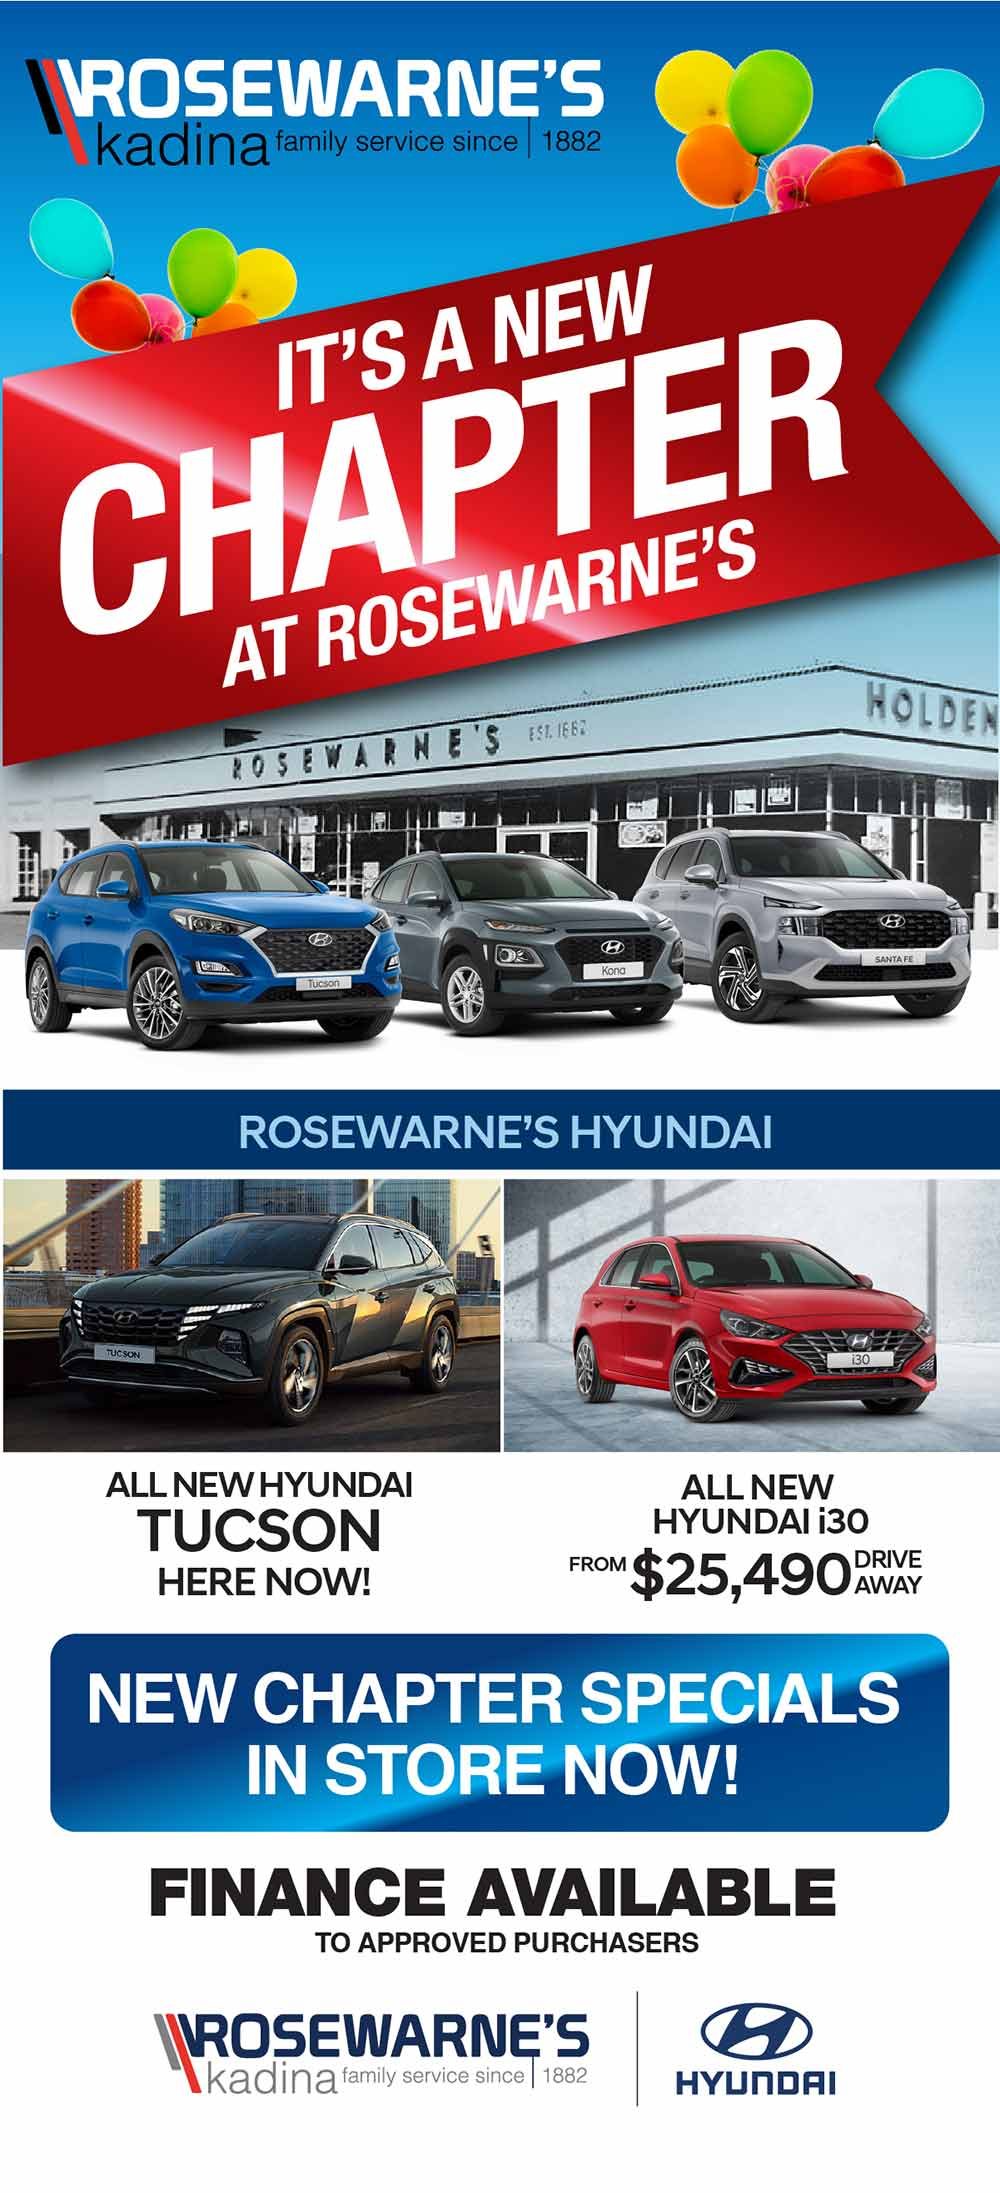 Rosewarne's Hyundai   It's A New Chapter At Rosewarne's - Special